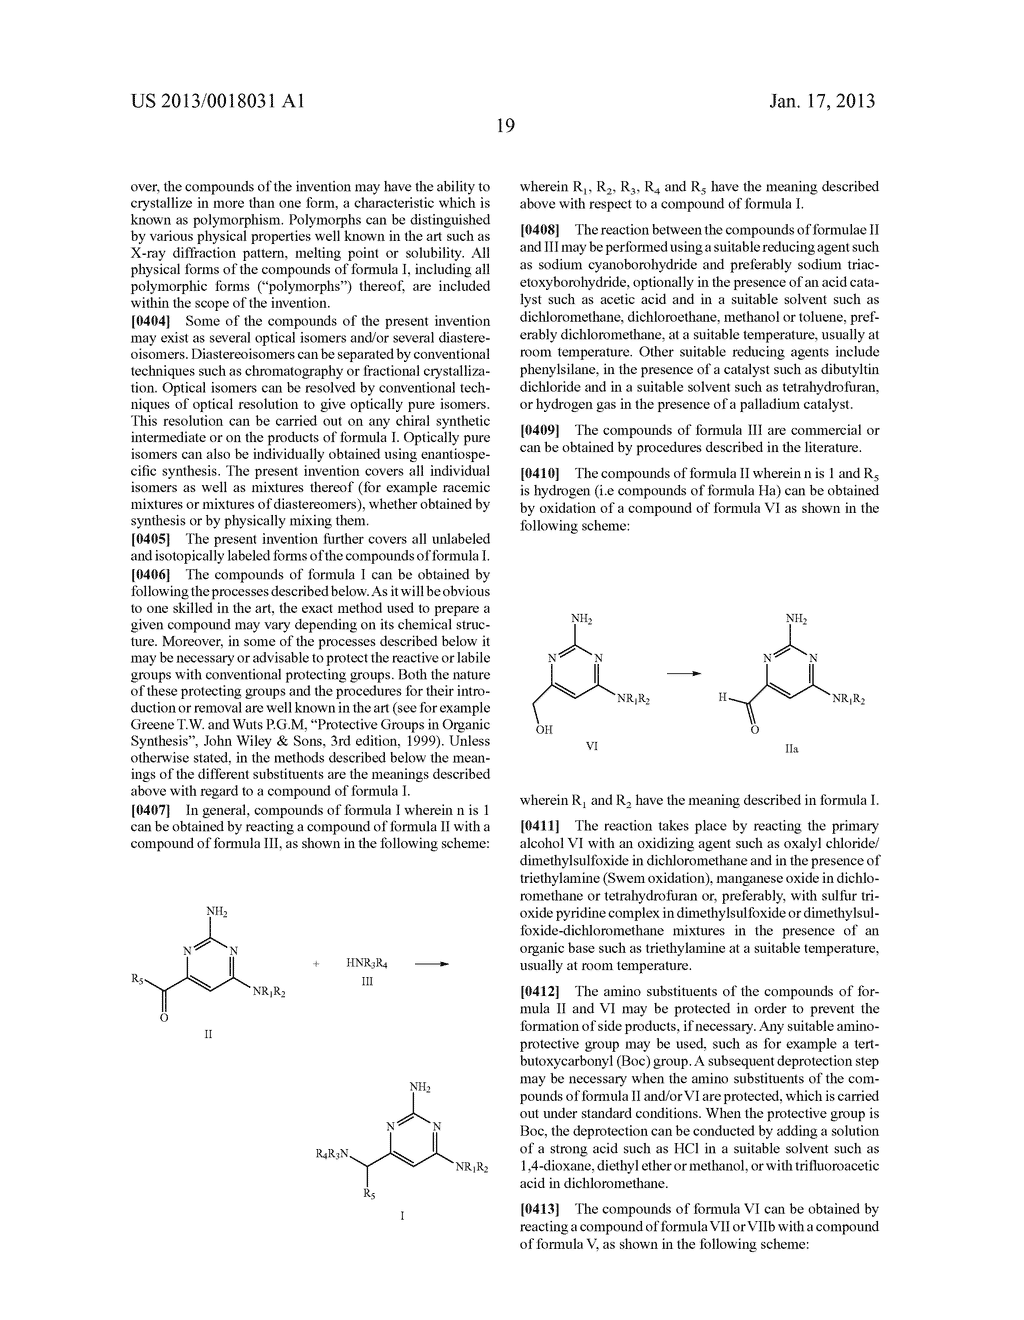 AMINOALKYLPYRIMIDINE DERIVATIVES AS HISTAMINE H4 RECEPTOR ANTAGONISTS - diagram, schematic, and image 20